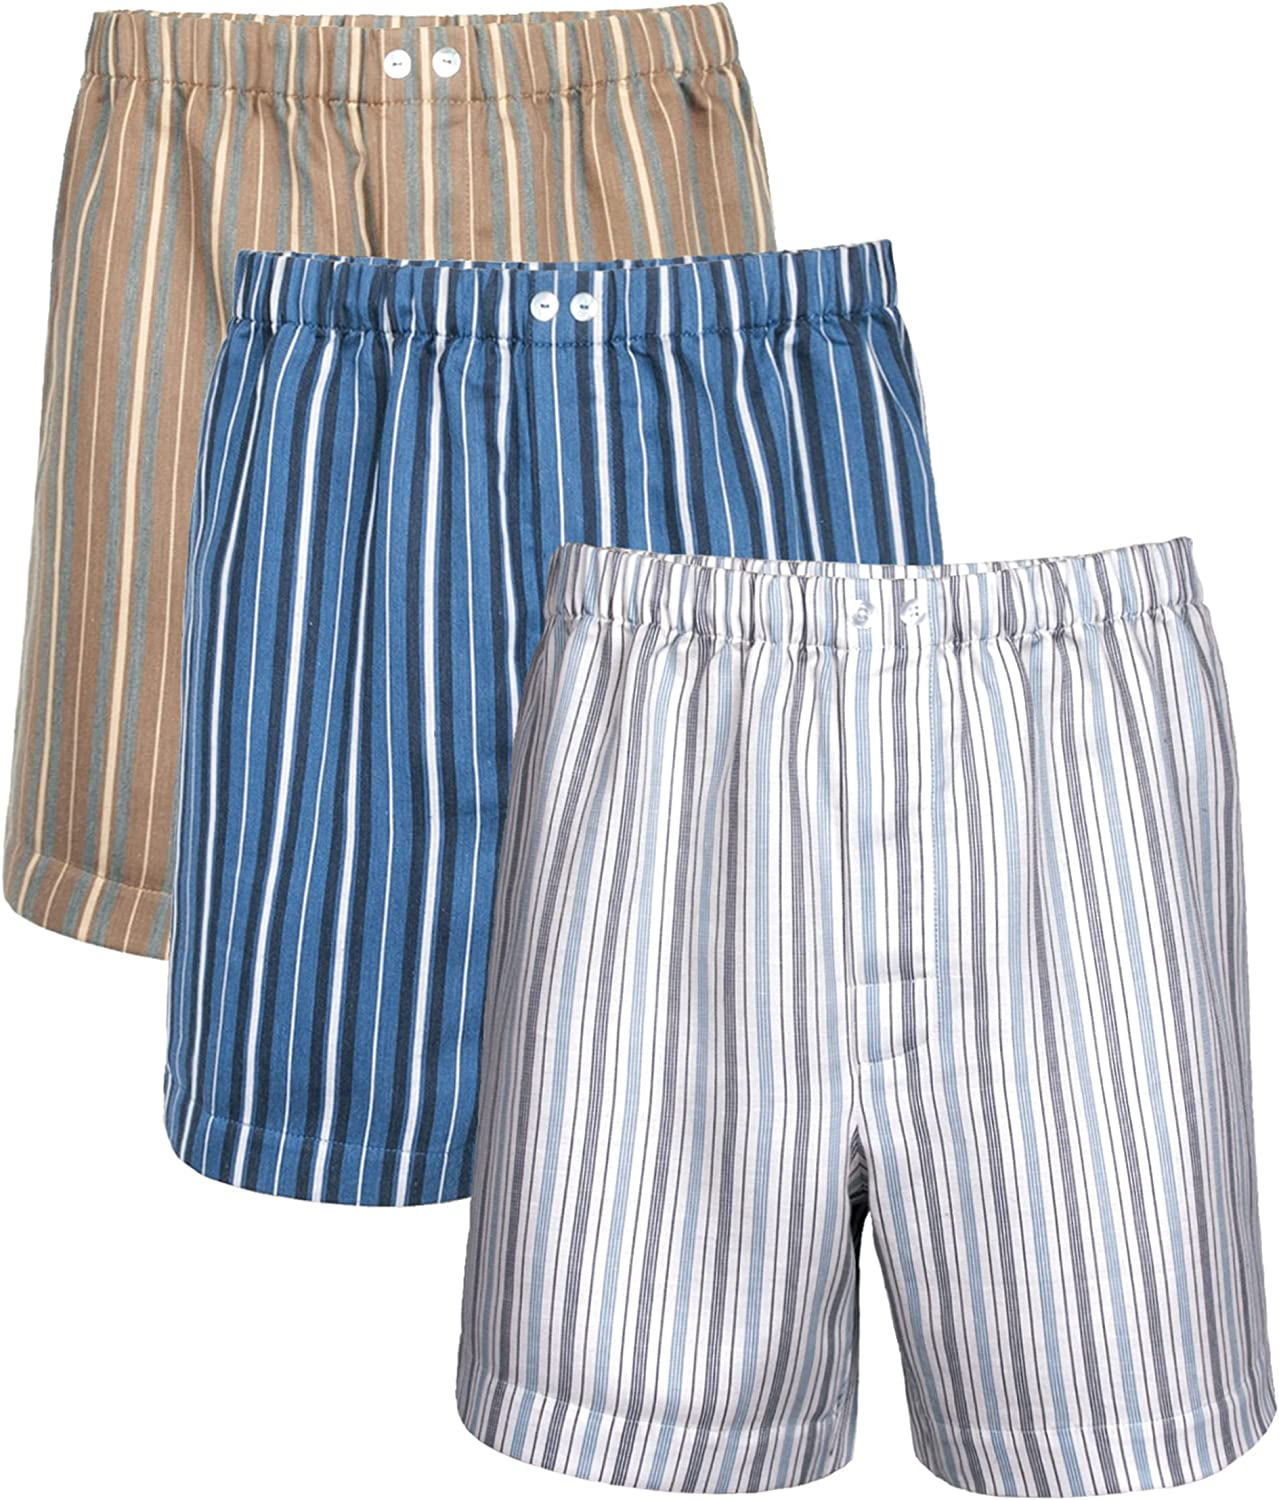 Men's Woven Boxer & Sleep Shorts Striped Sateen Linen Cotton 3-Pack - Crafted in Europe